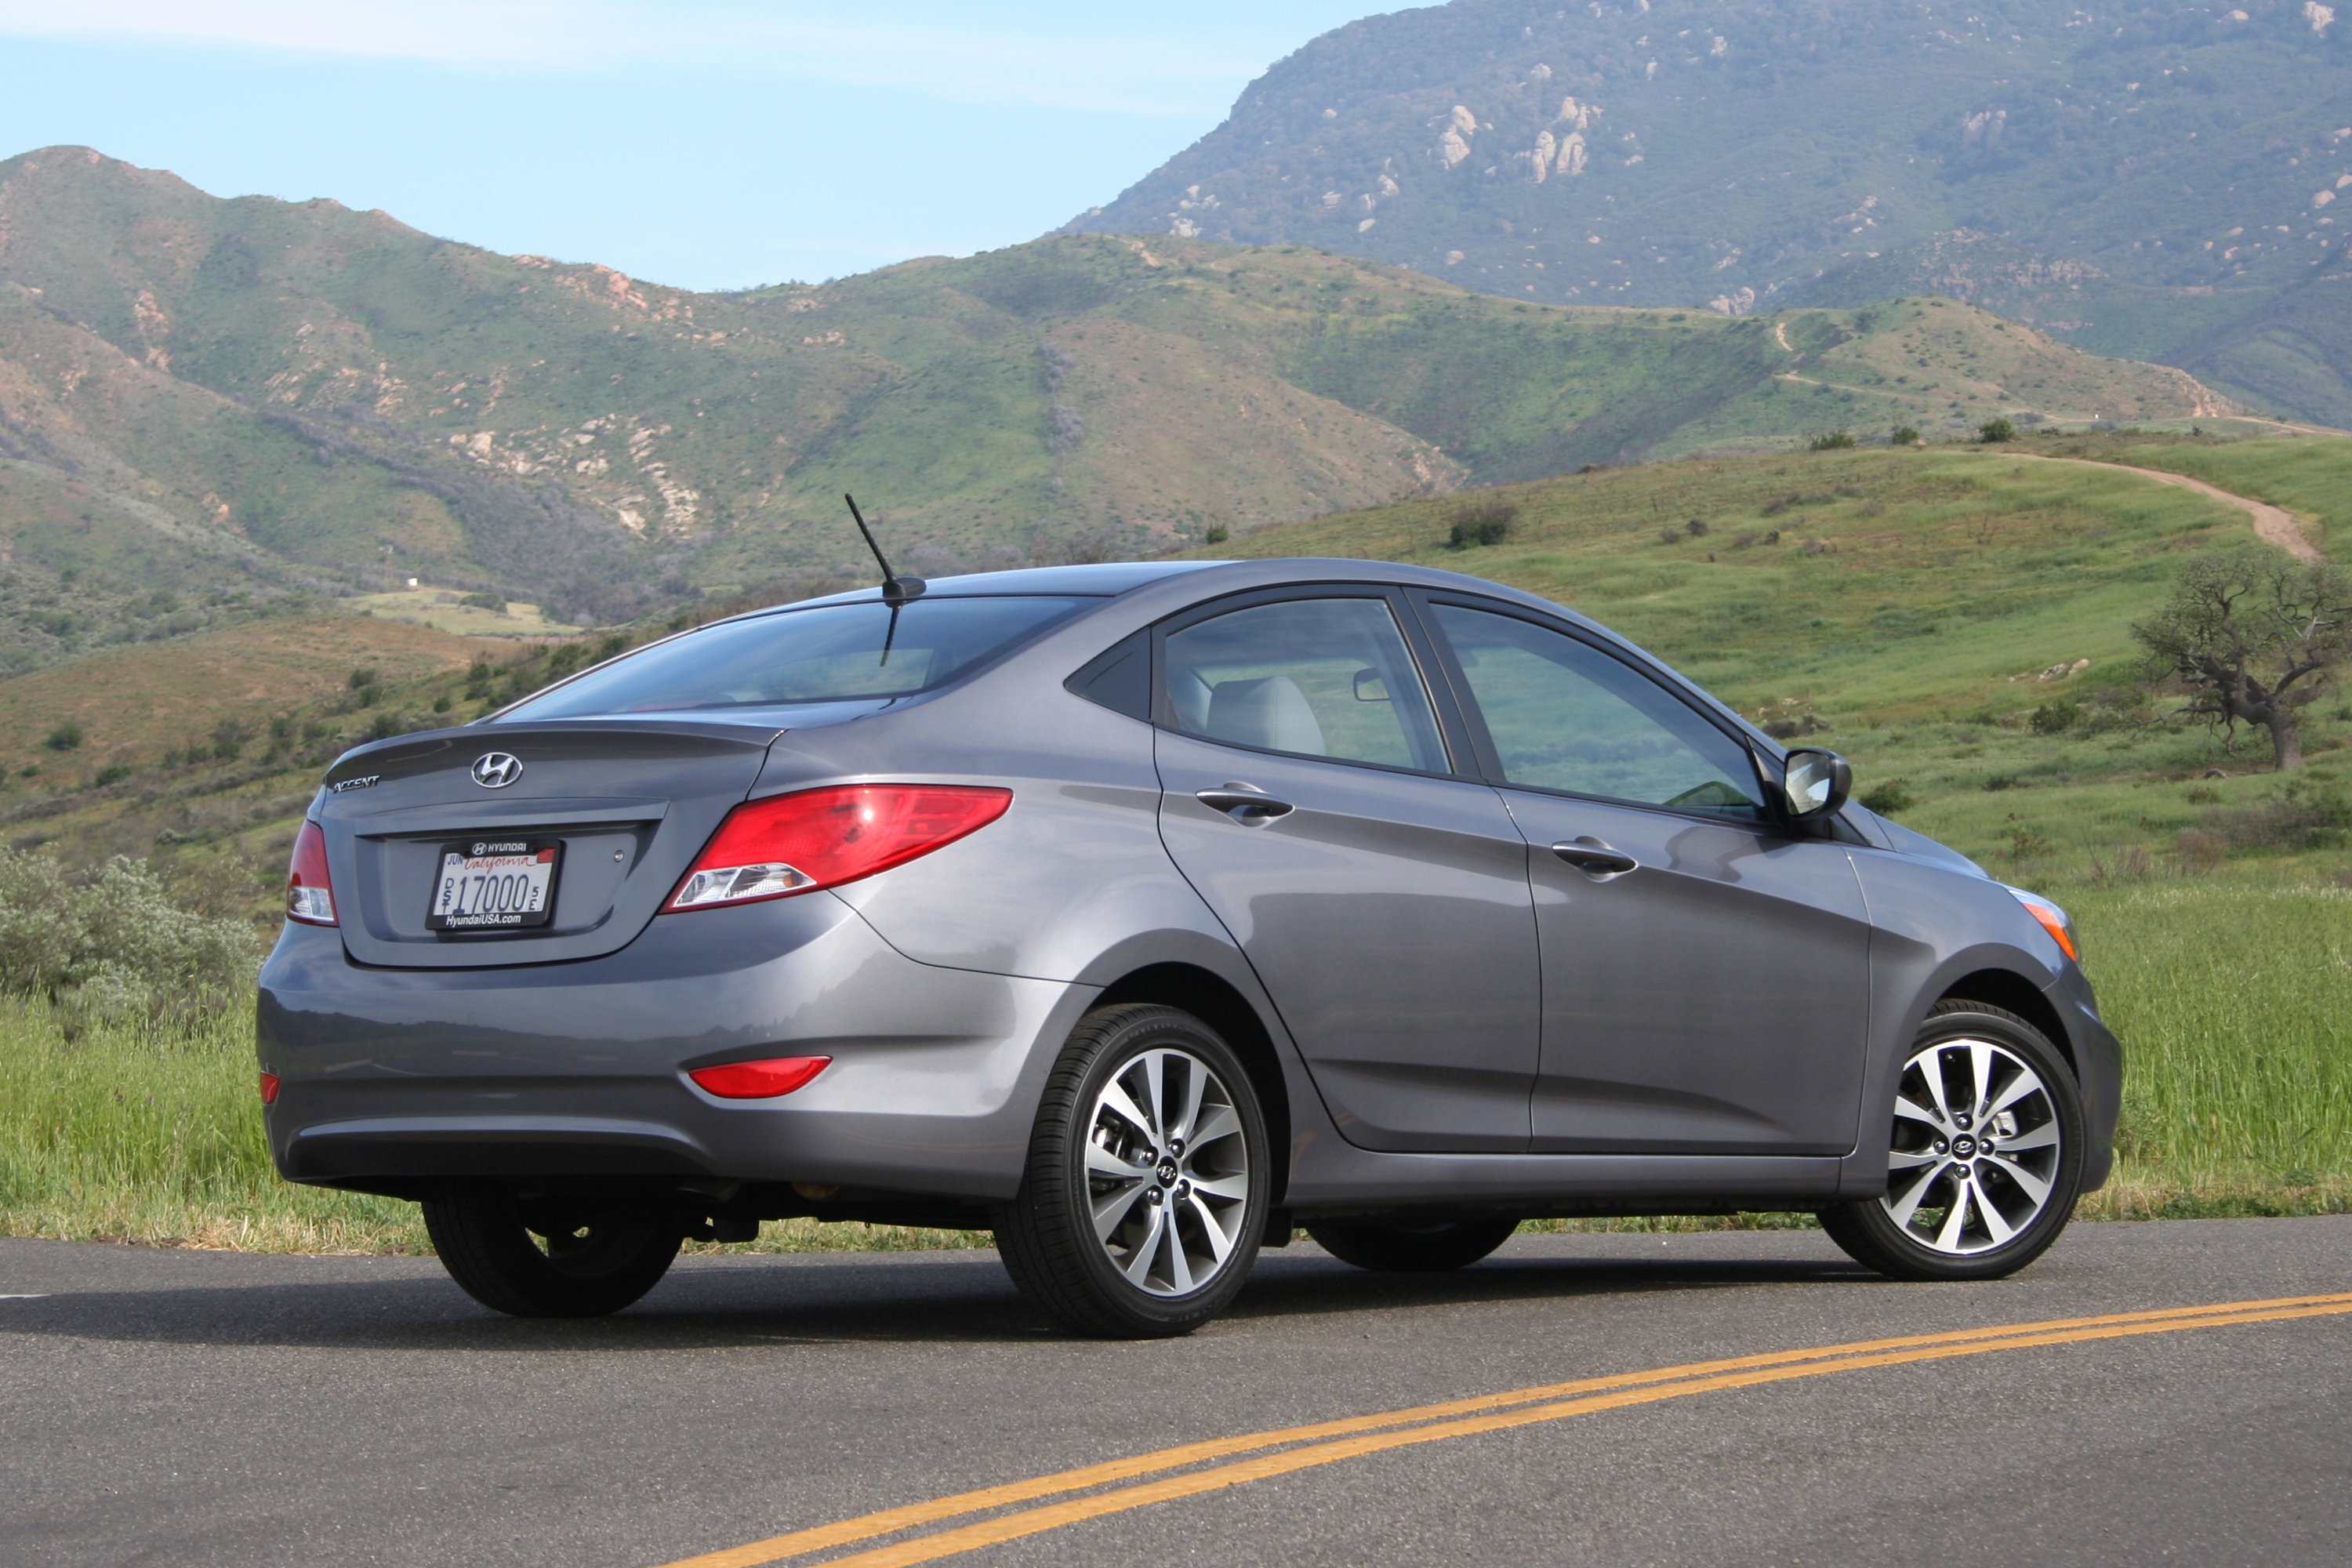 2015 Hyundai Accent Review - AutoGuide com